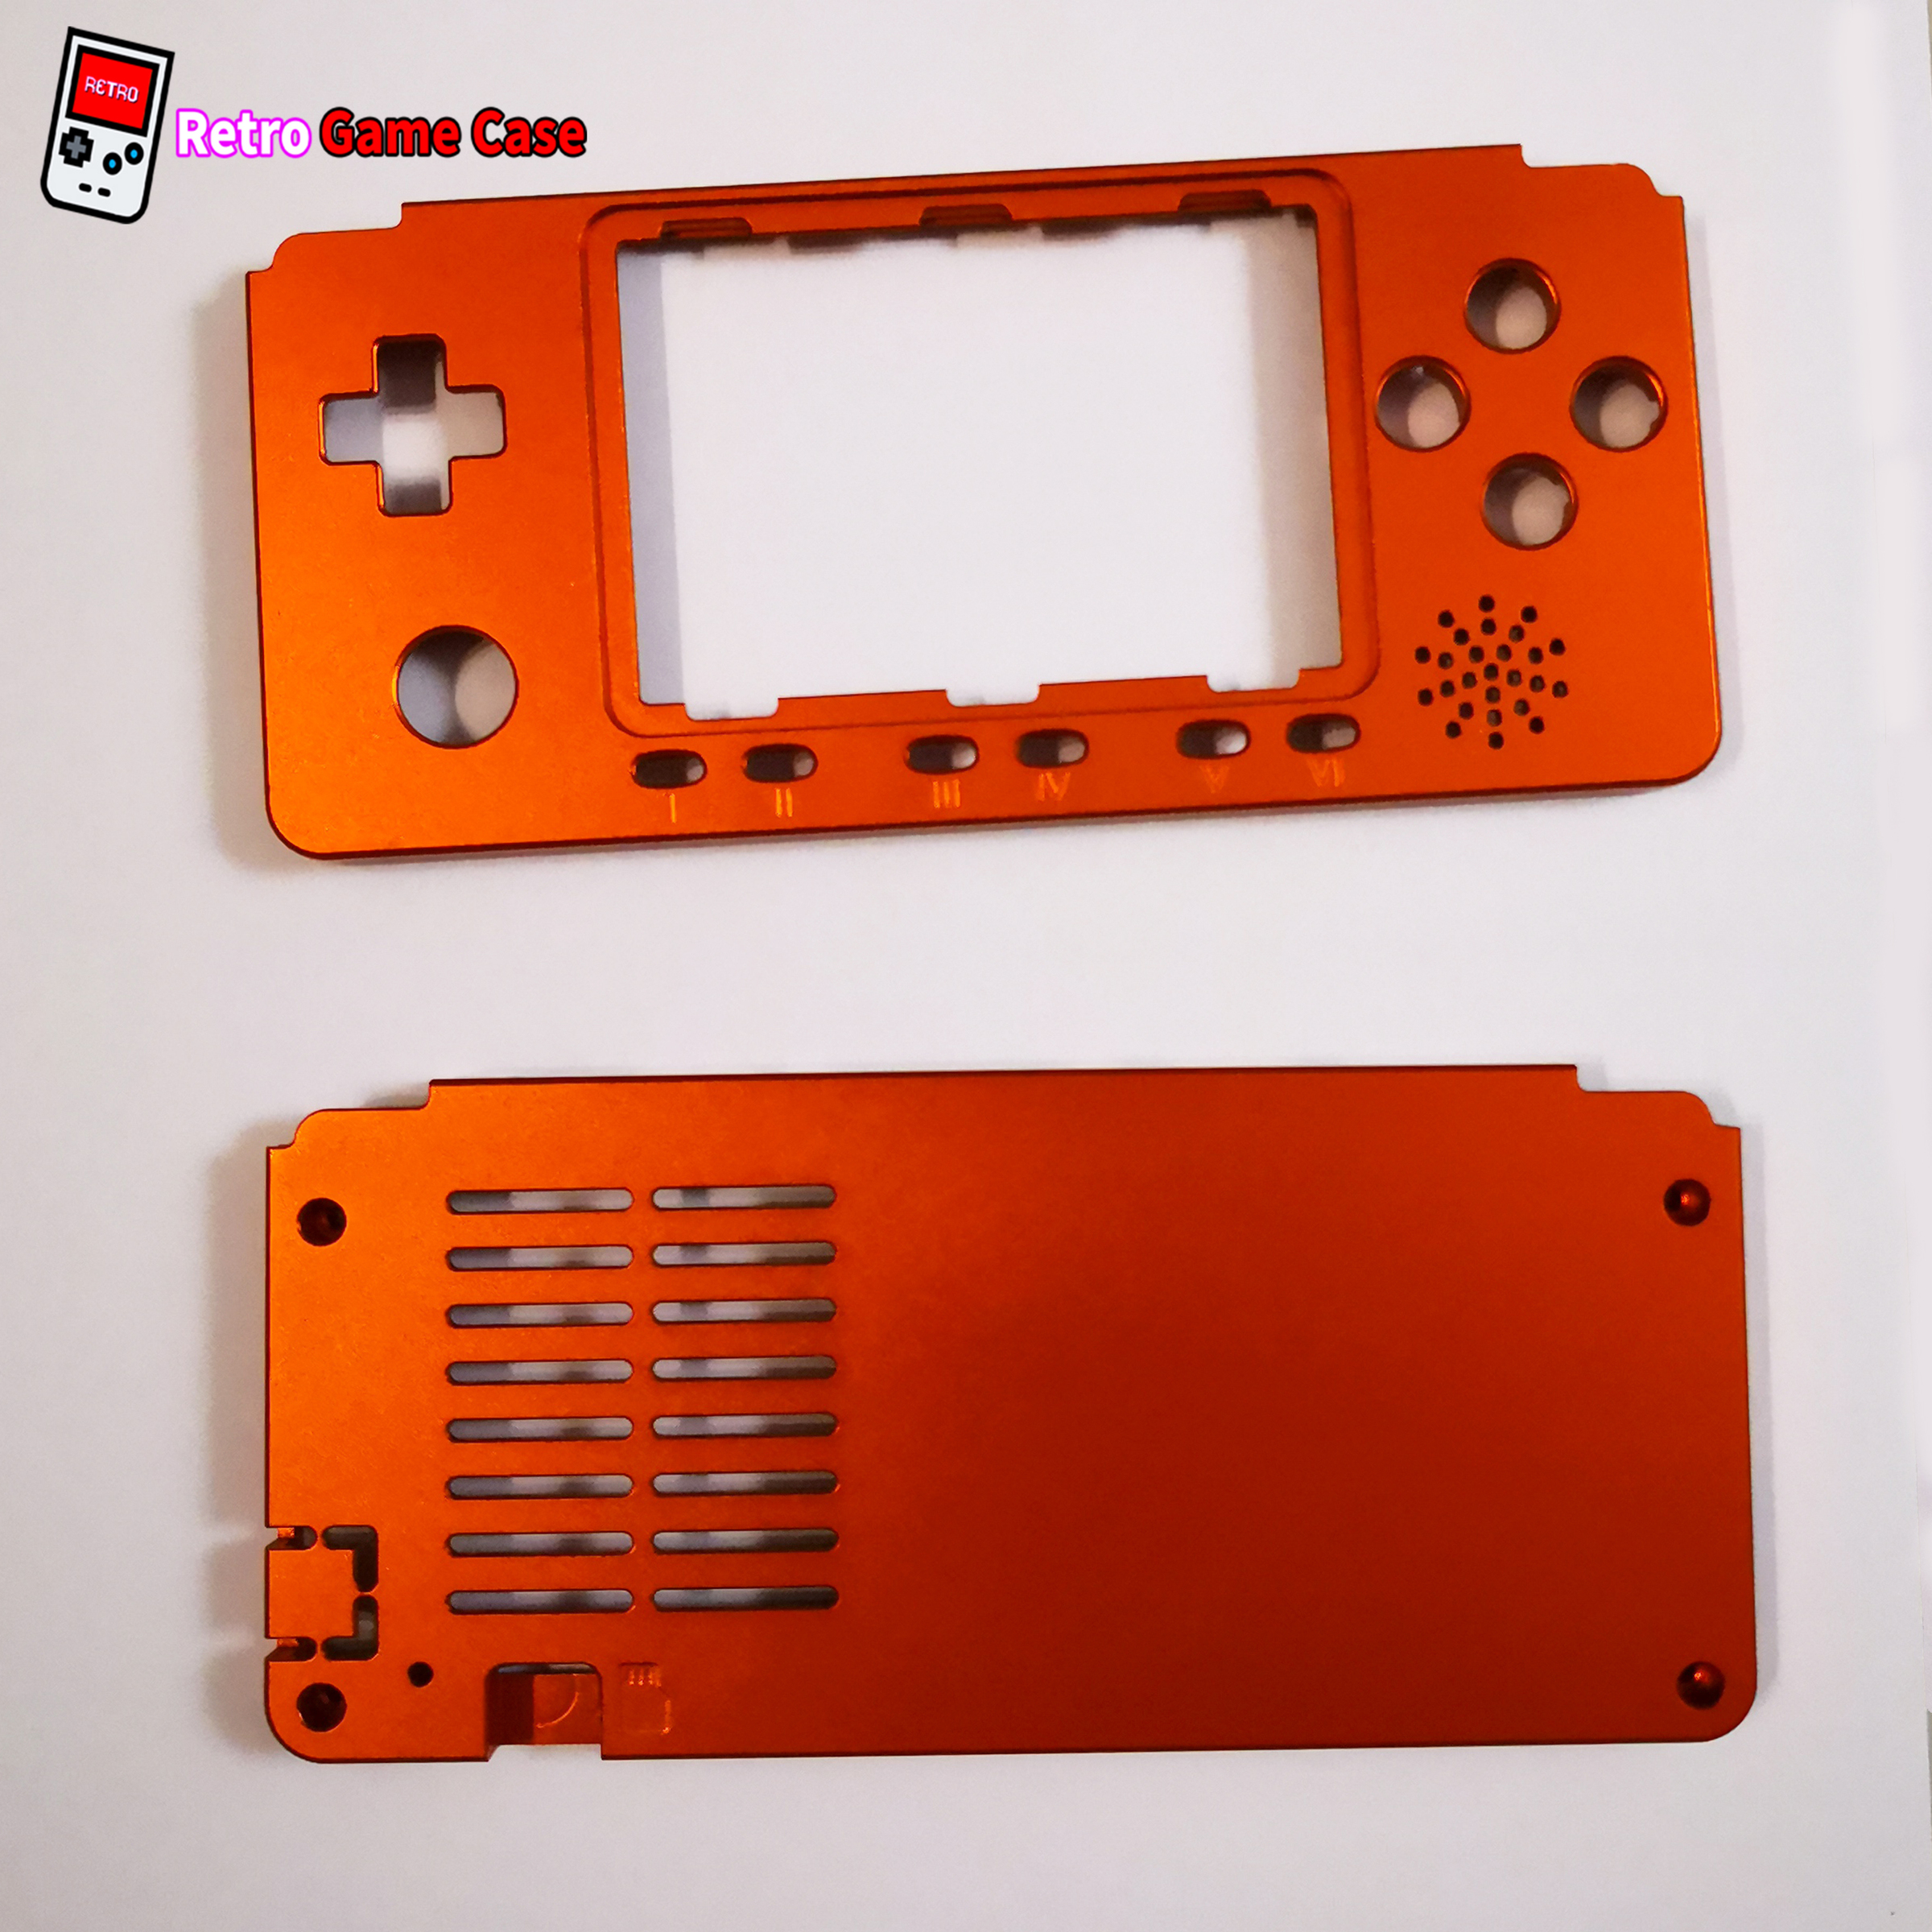 My_retro_game_case_Game_Kiddy_OGA_Metal_shell_case_orange.jpg